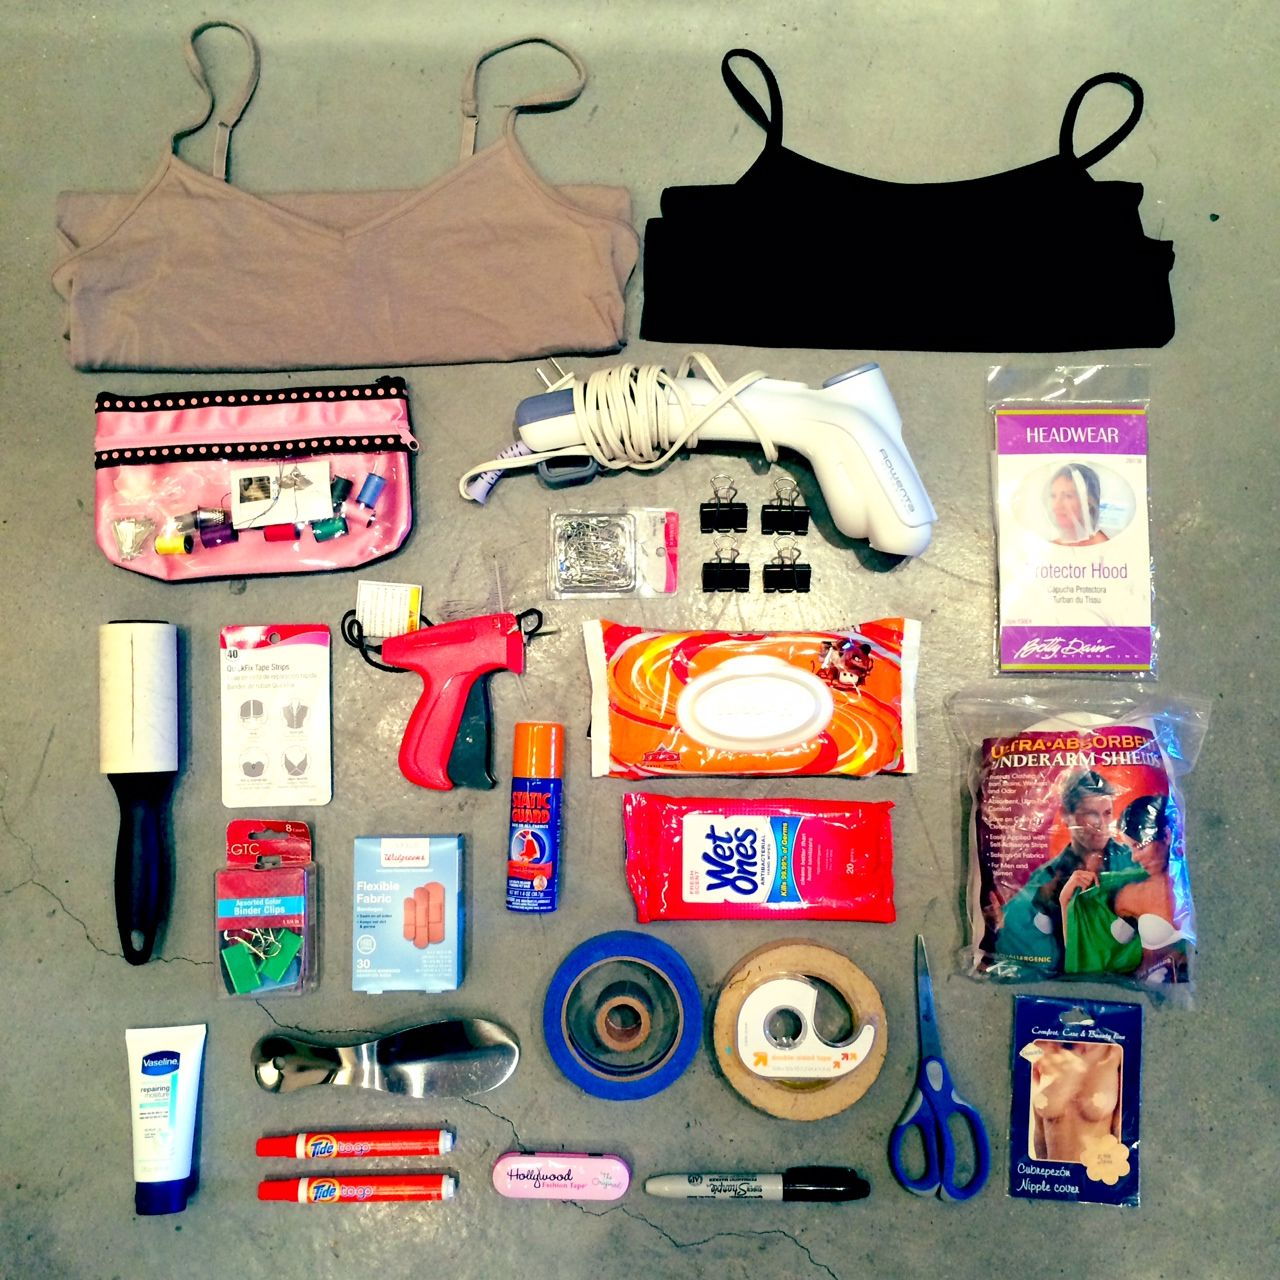 Wardrobe Kits Wardrobe Stylists Kit Stuff Pinterest Stylists